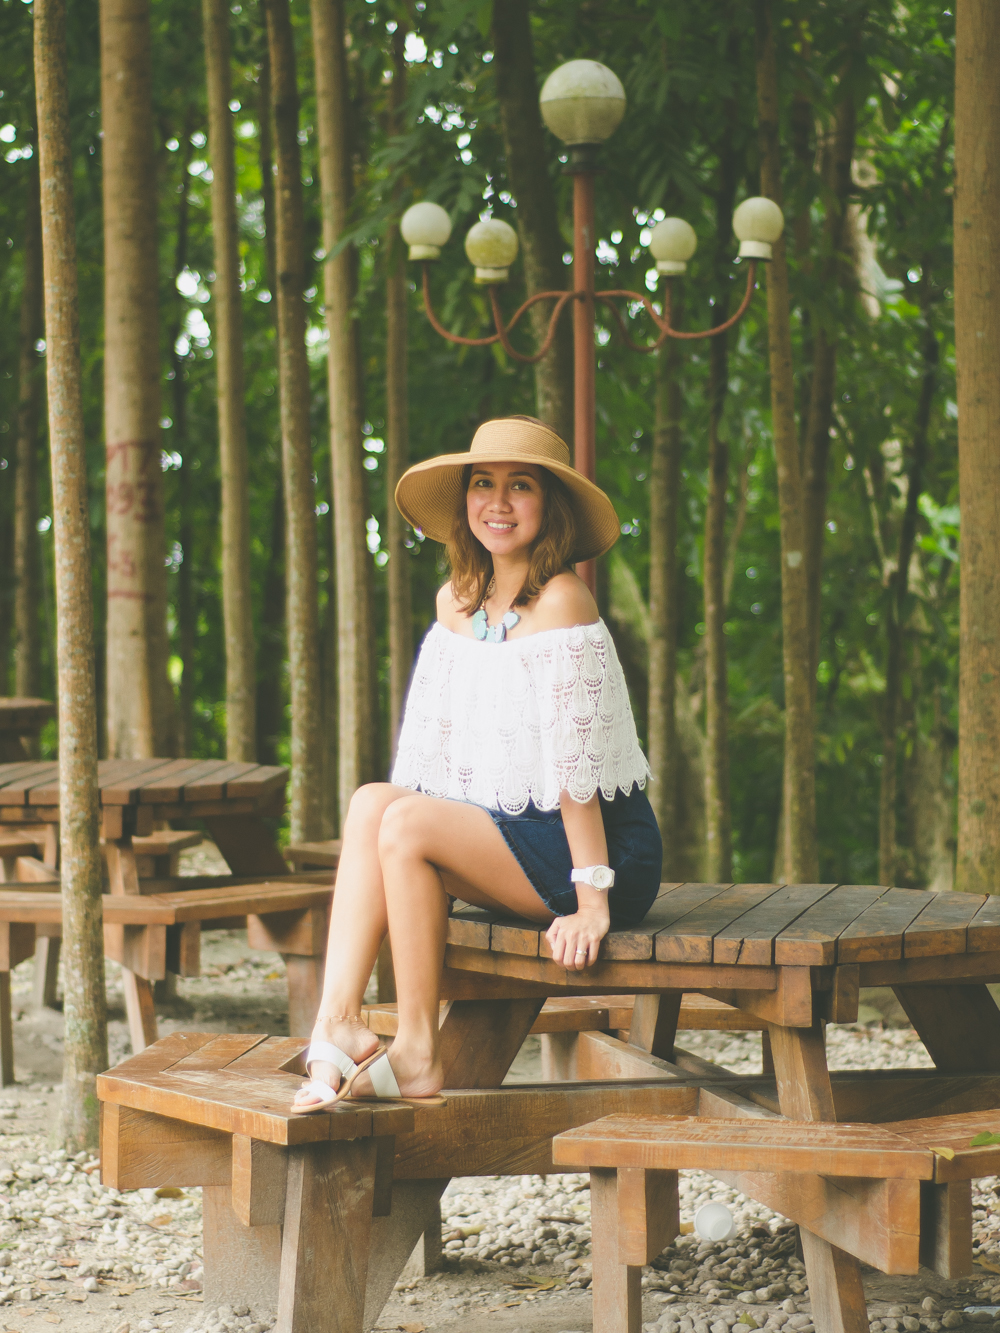 Alchemy of Fashion, Off Shoulder Top, Wide brimmed hat, Turquoise necklace, Denim Button-front skirt, A-Line Skirt, Seventies Trend, 70s Fashion, Celine Sandals, Denim A-line skirt, Cebu Fashion Blogger, Toni Pino-Oca, Cebu Fashion Blog, Cebu Blogger, Cebu Bloggers, Cebuana, Summer Outfit, Summer Style